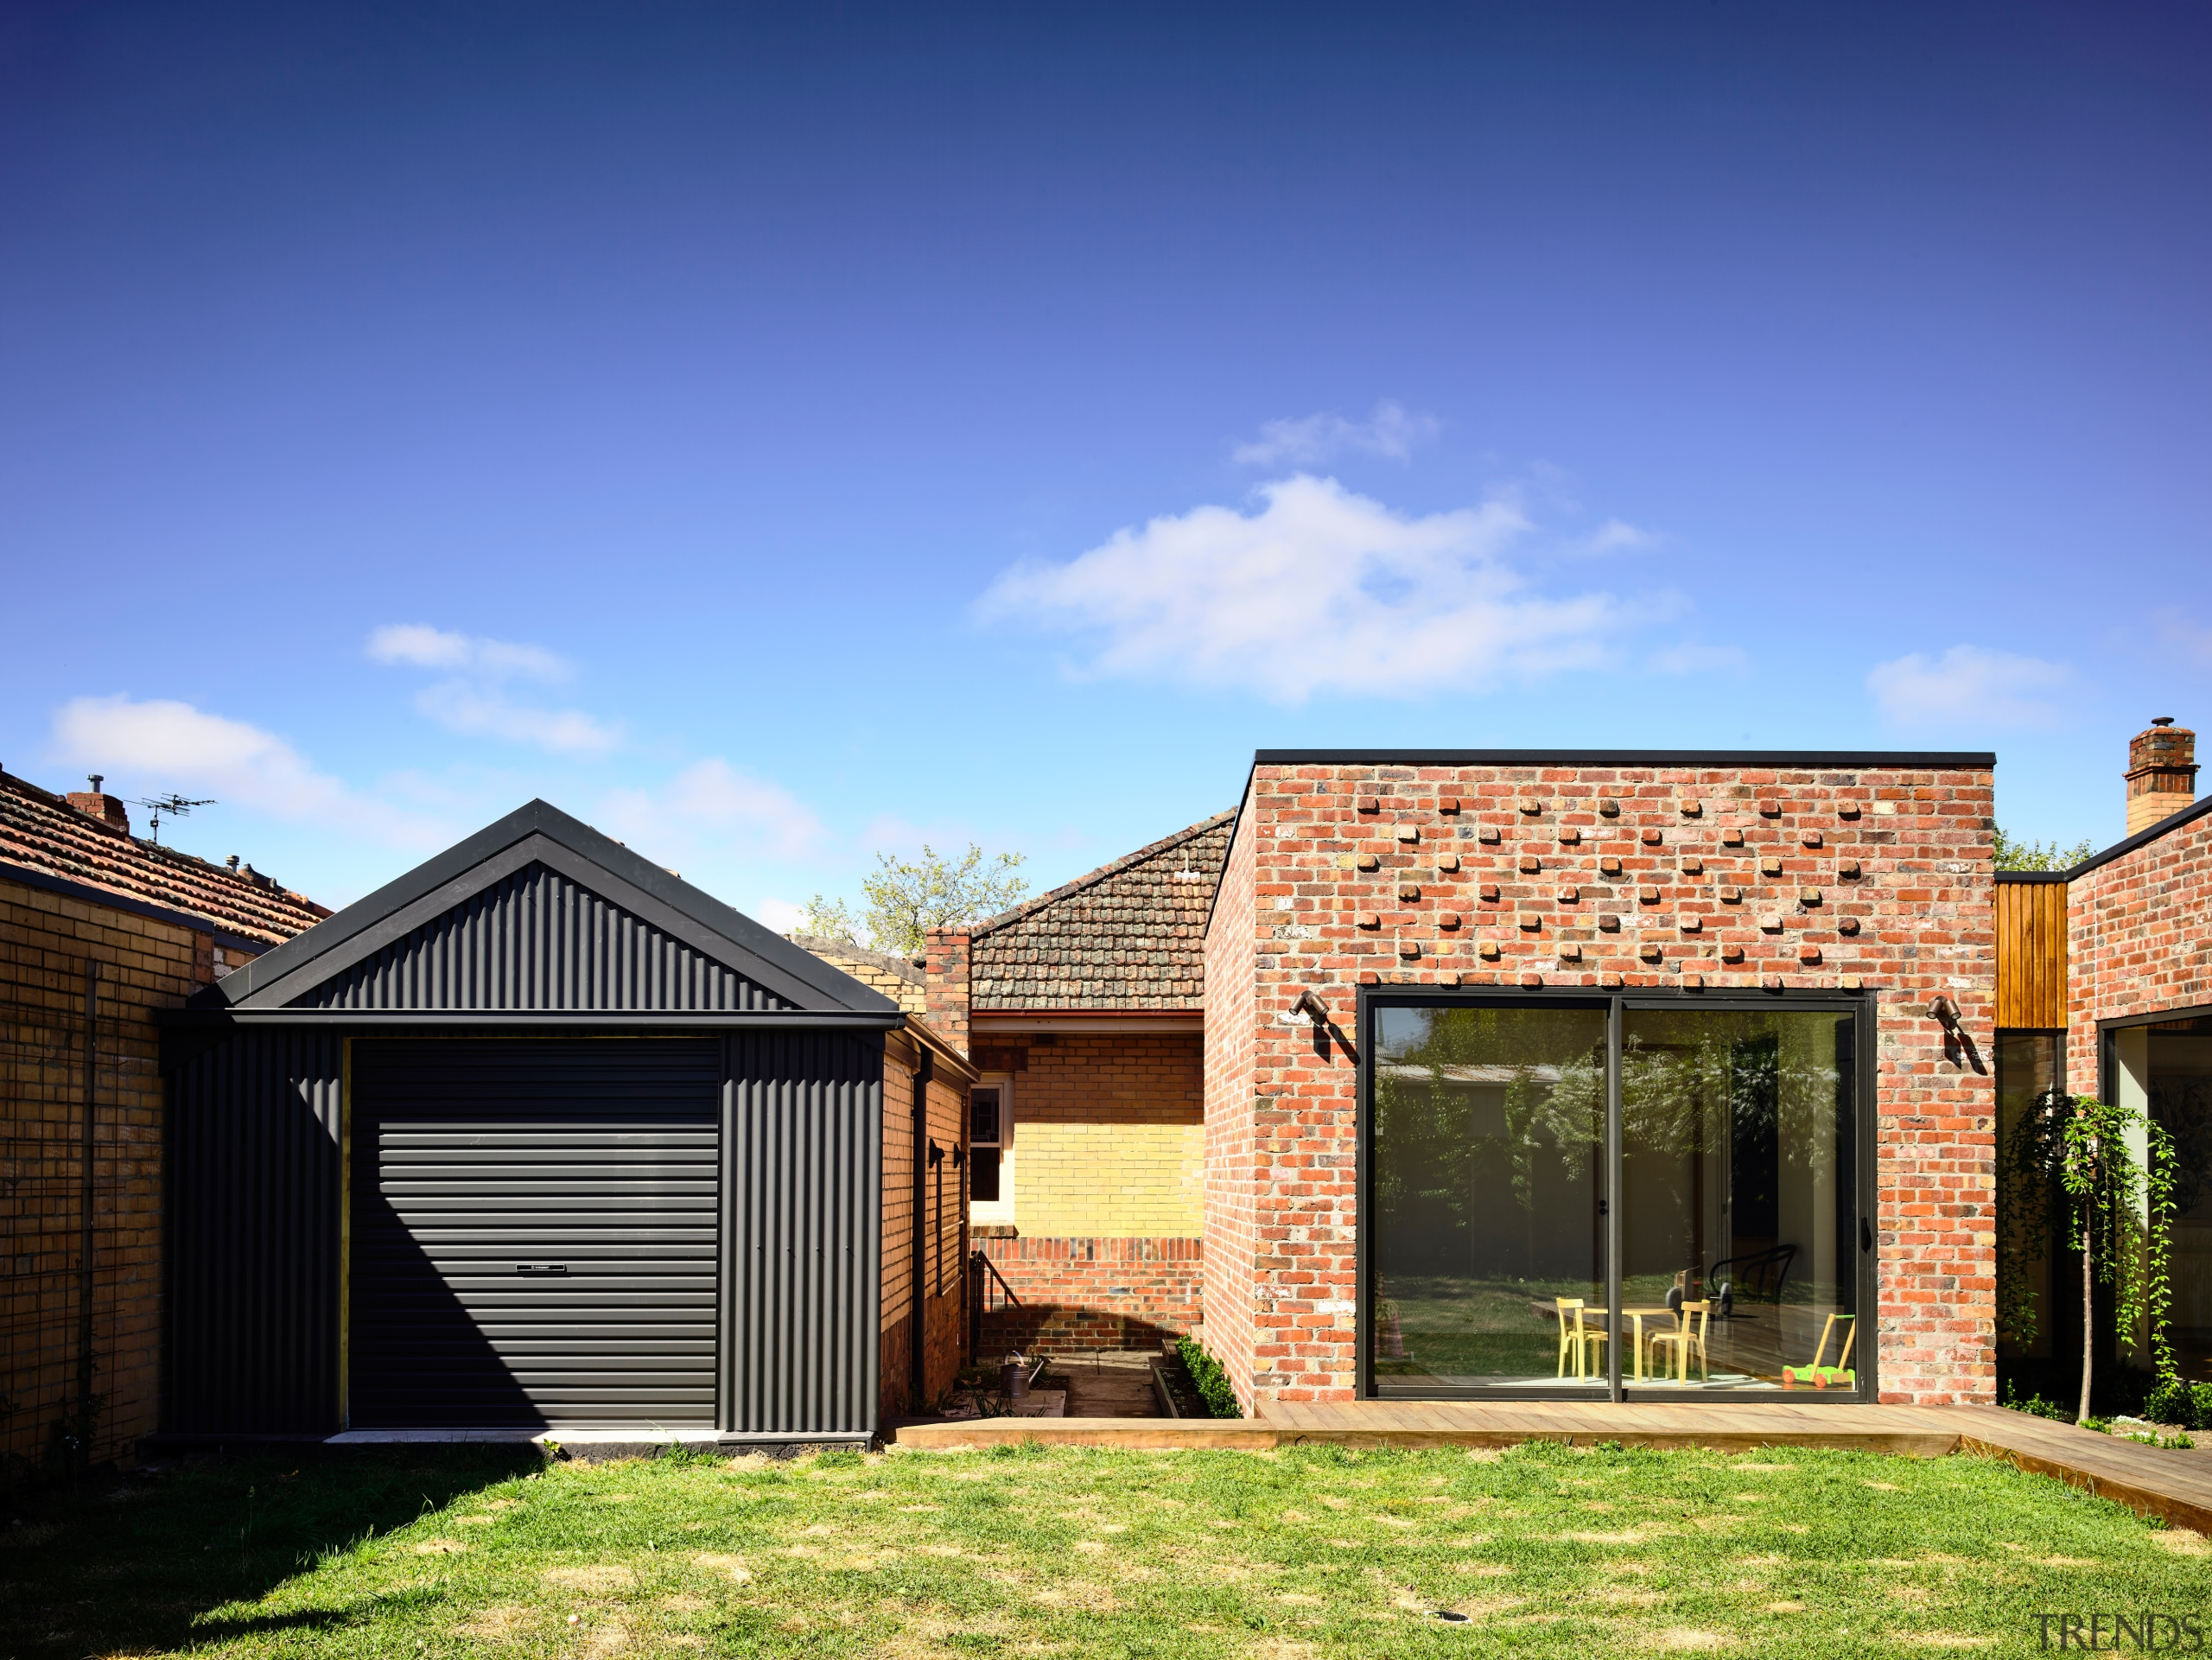 Black corrugated iron on the garage provides a backyard, elevation, facade, home, house, property, residential area, roof, shed, siding, extension, brick, Porter architectur